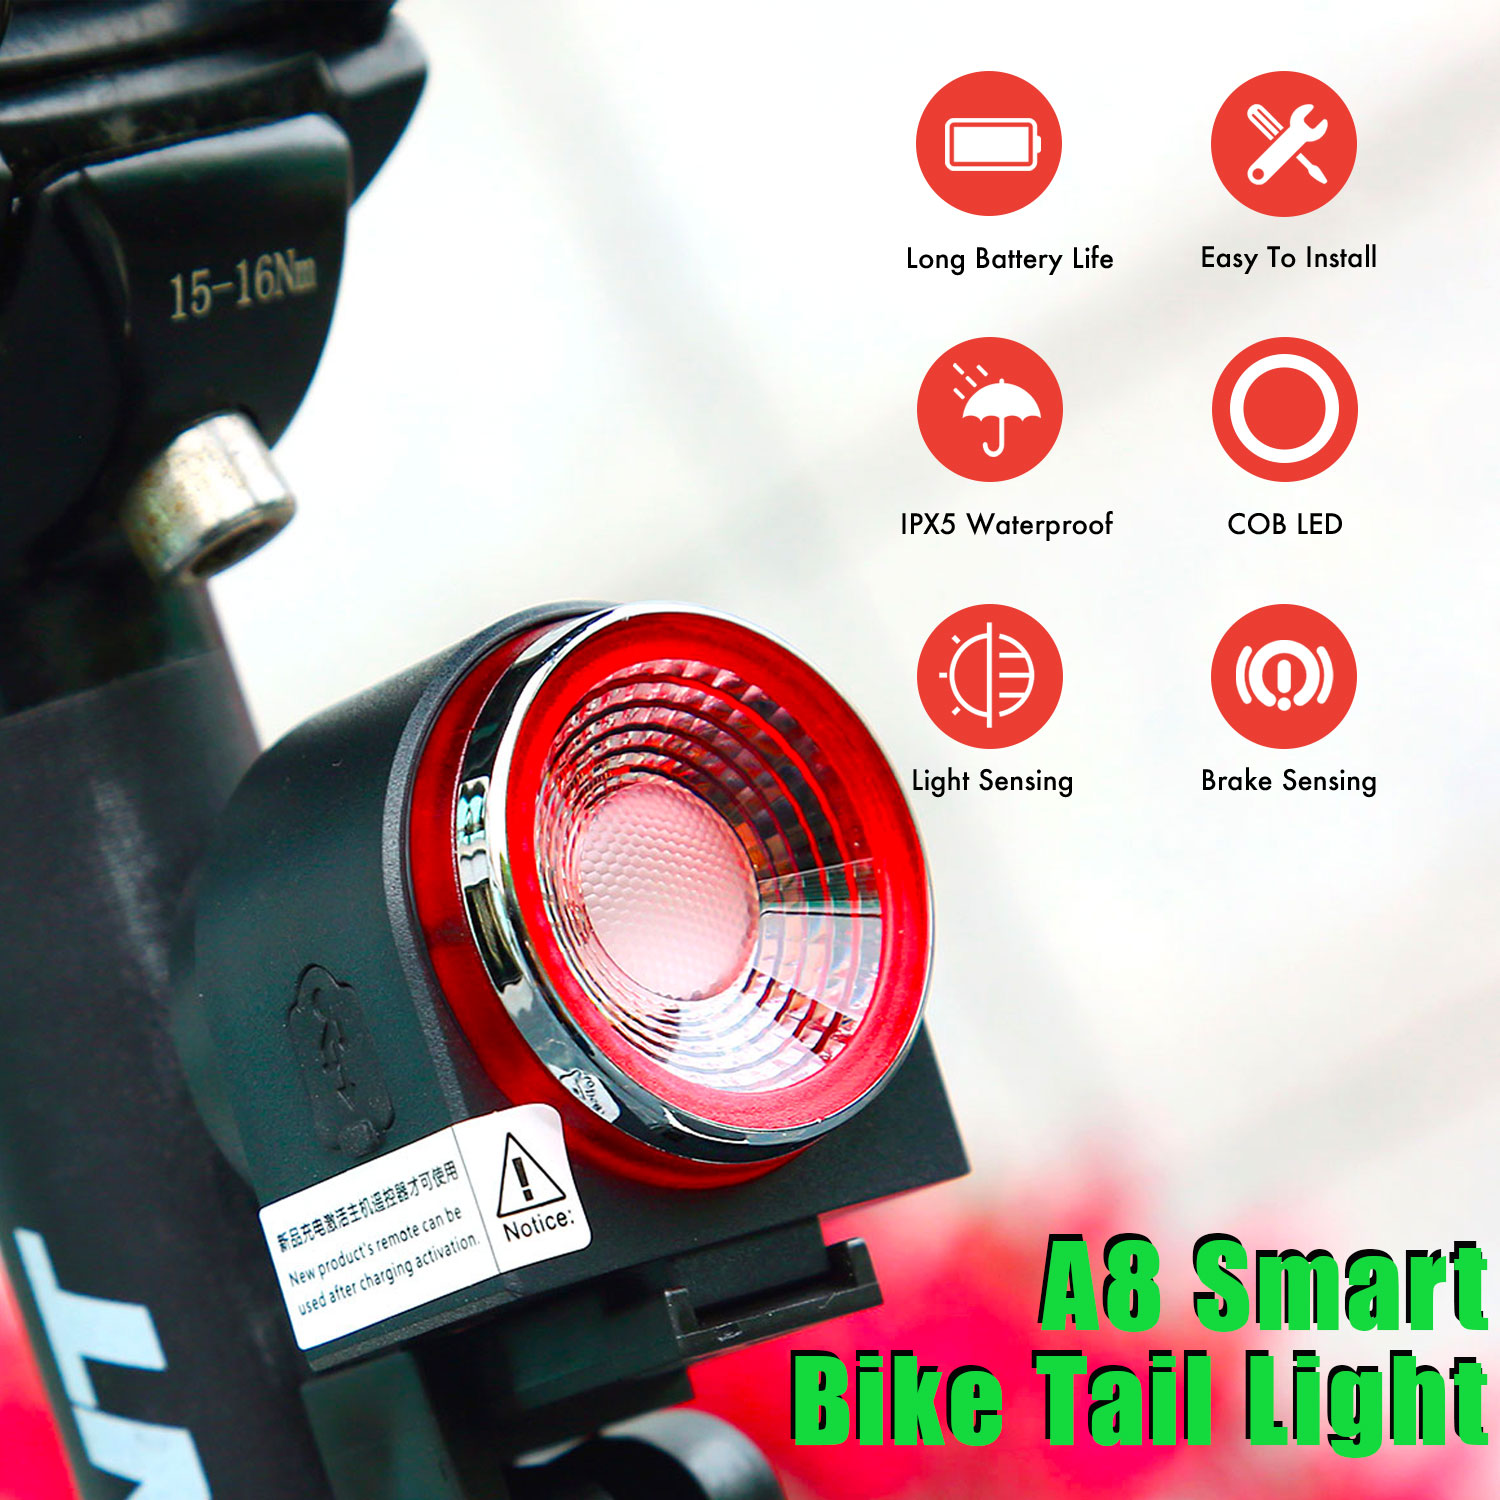 Remote Control Smart Bicycle Light With Anti Thief Alarm USB Rechargeable Bike LED Tail Lamp Cycling Security IPX5 Waterproof